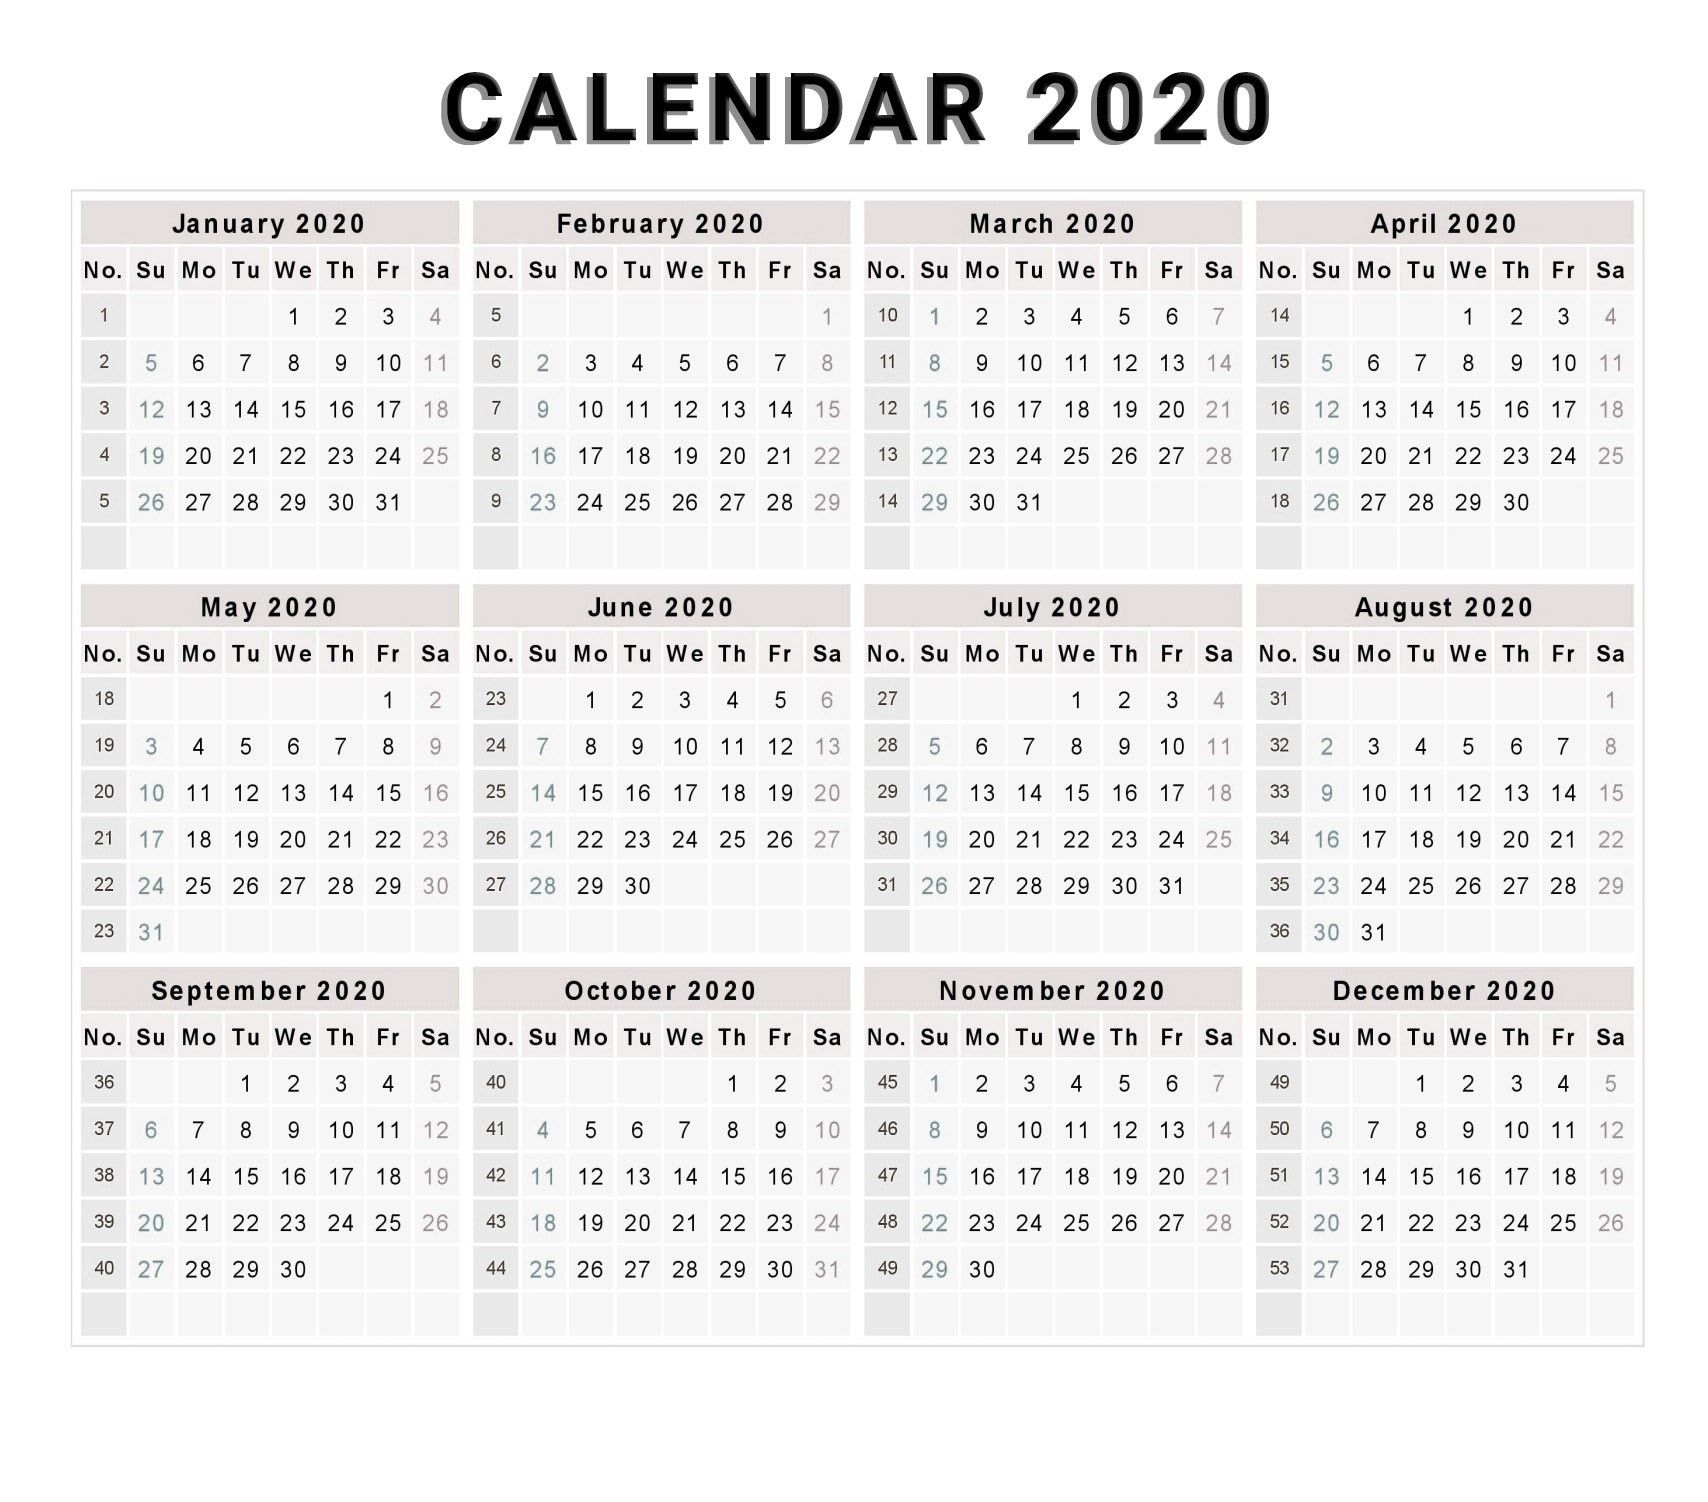 Calendar 2020 Free Printable Calendar 2020 Free 2020 within Downloadable 2020 Year At A Glance 2020 Calendar